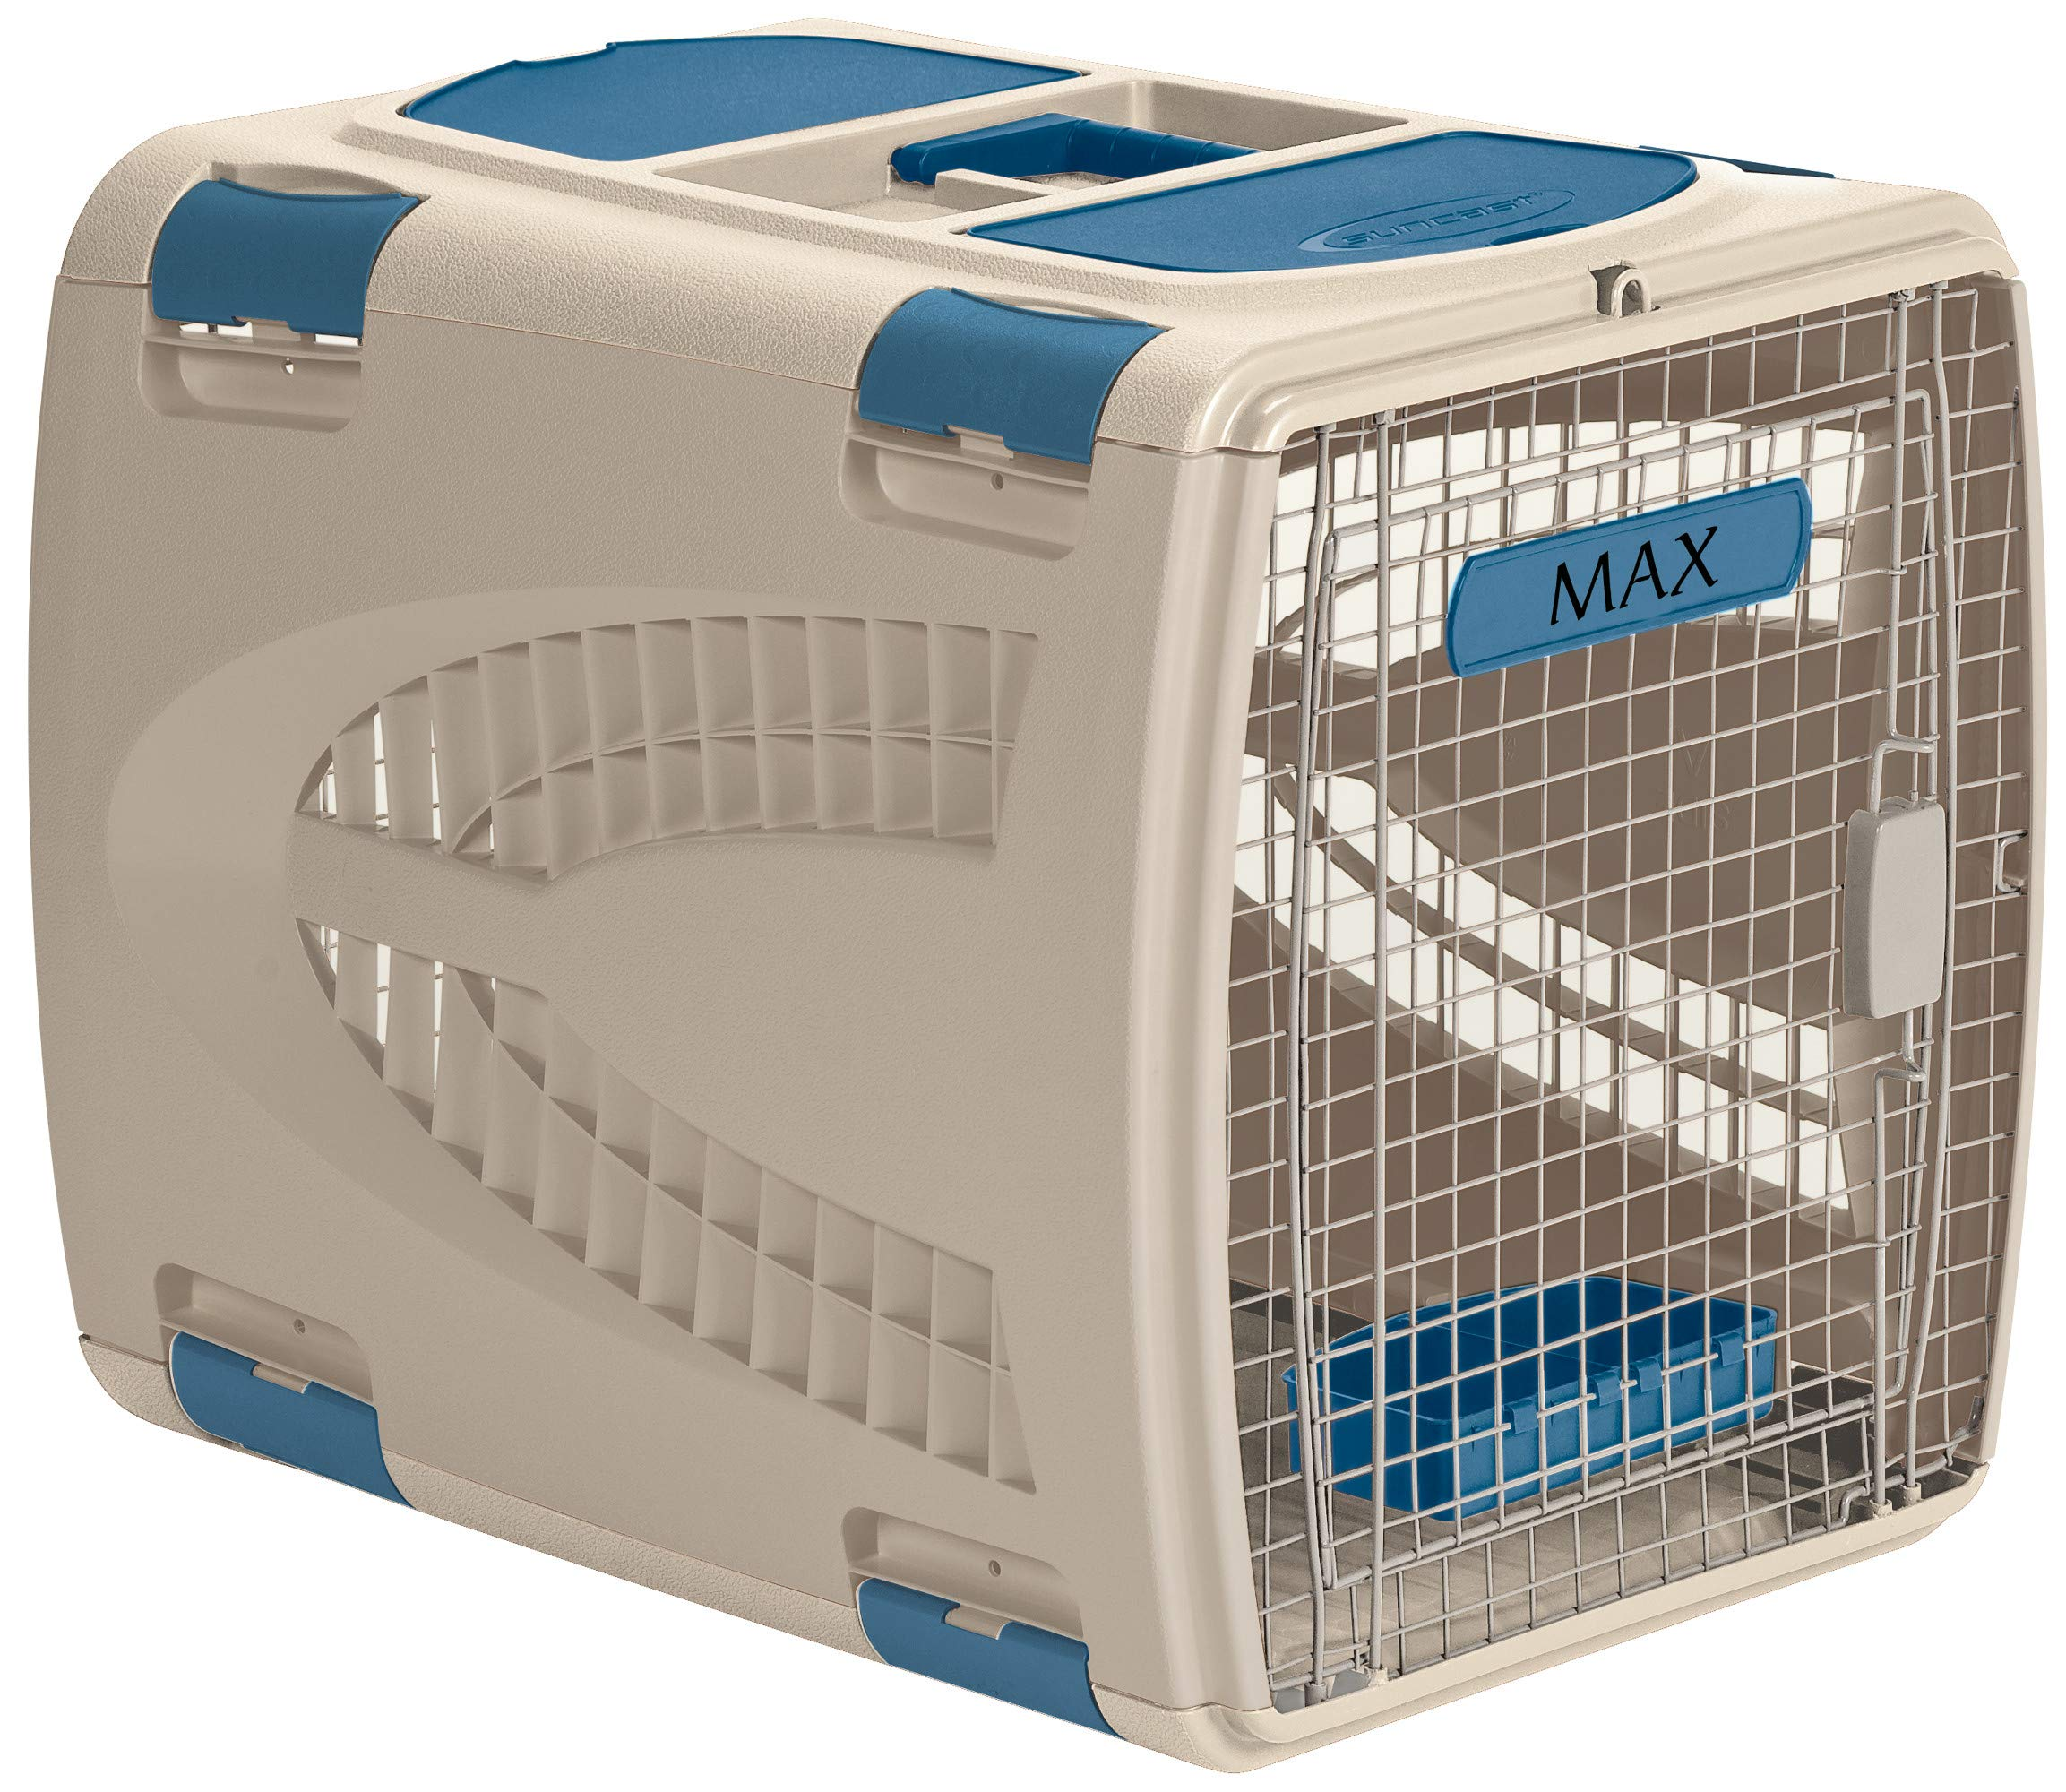 Suncast Deluxe Pet Carrier with Handle - Durable Airline Approved Pet Carrier for Dogs and Cats - Ideal for Air and Car Travel - Taupe and Blue by Suncast